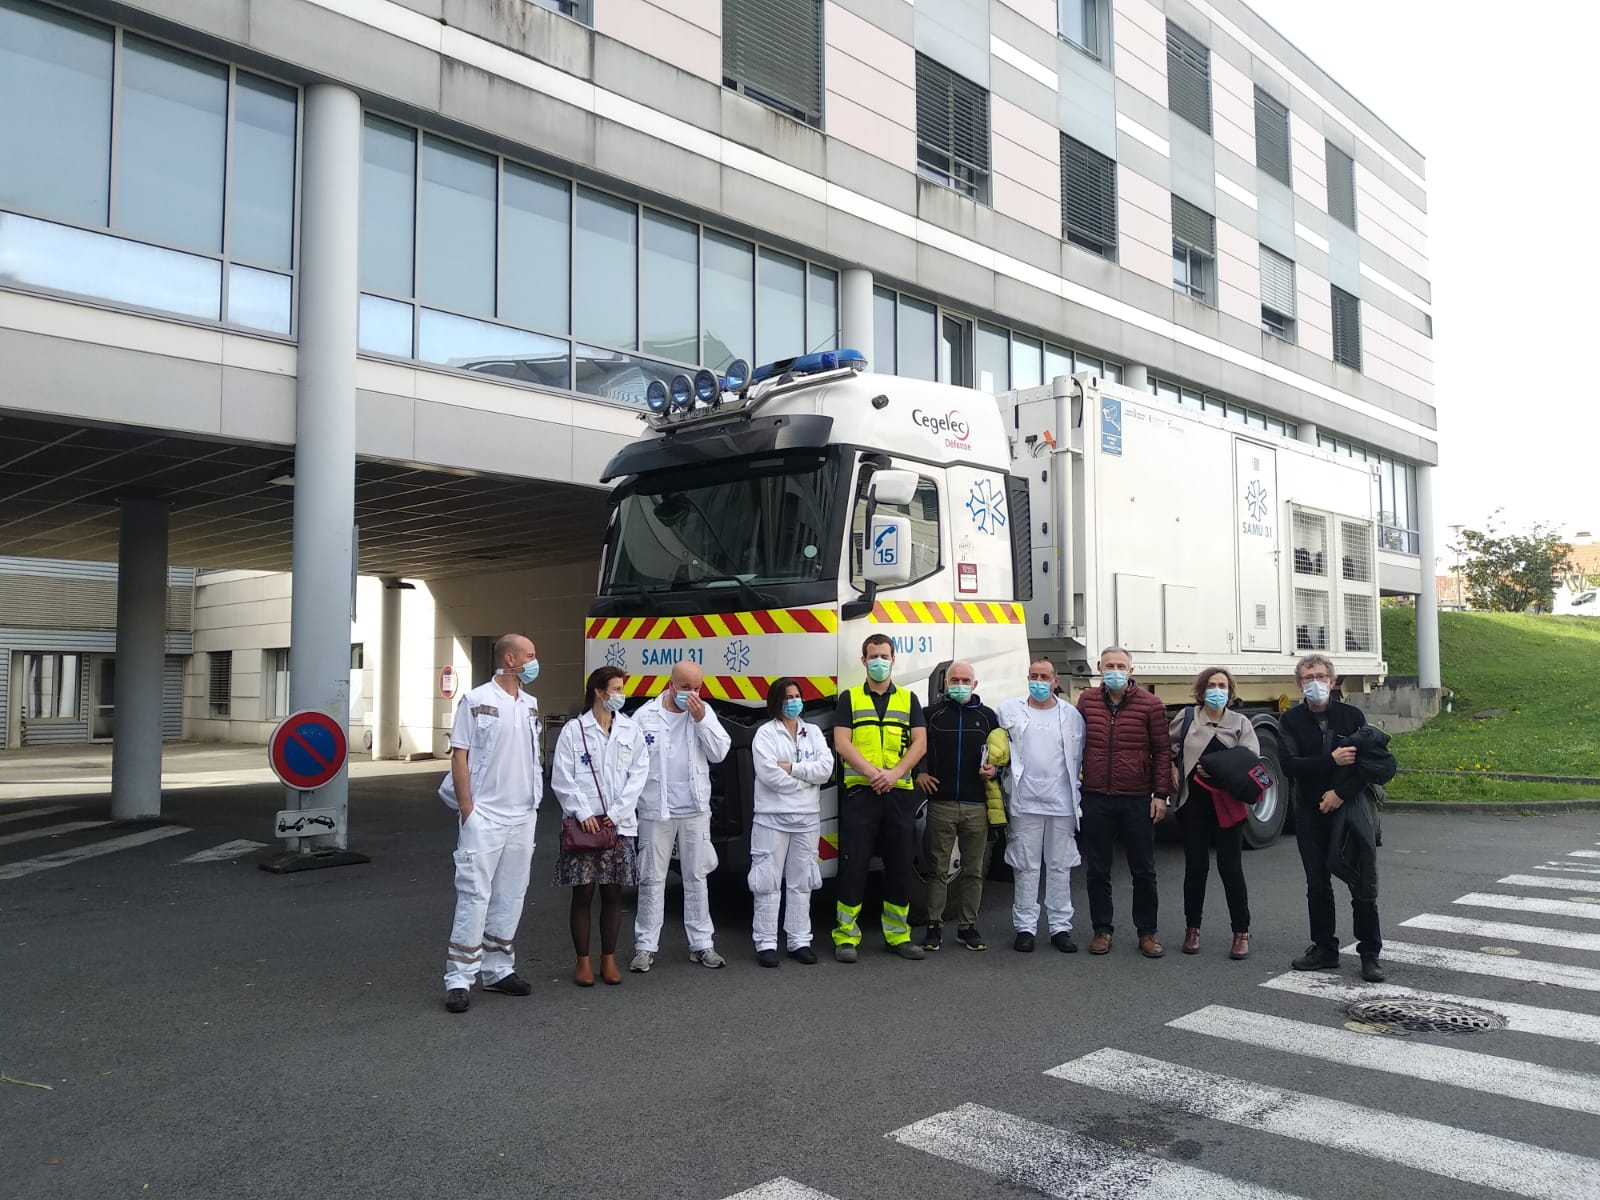 Mobile emergency unit returns to Toulouse after visiting Navarre to support COVID-19 vaccination campaign